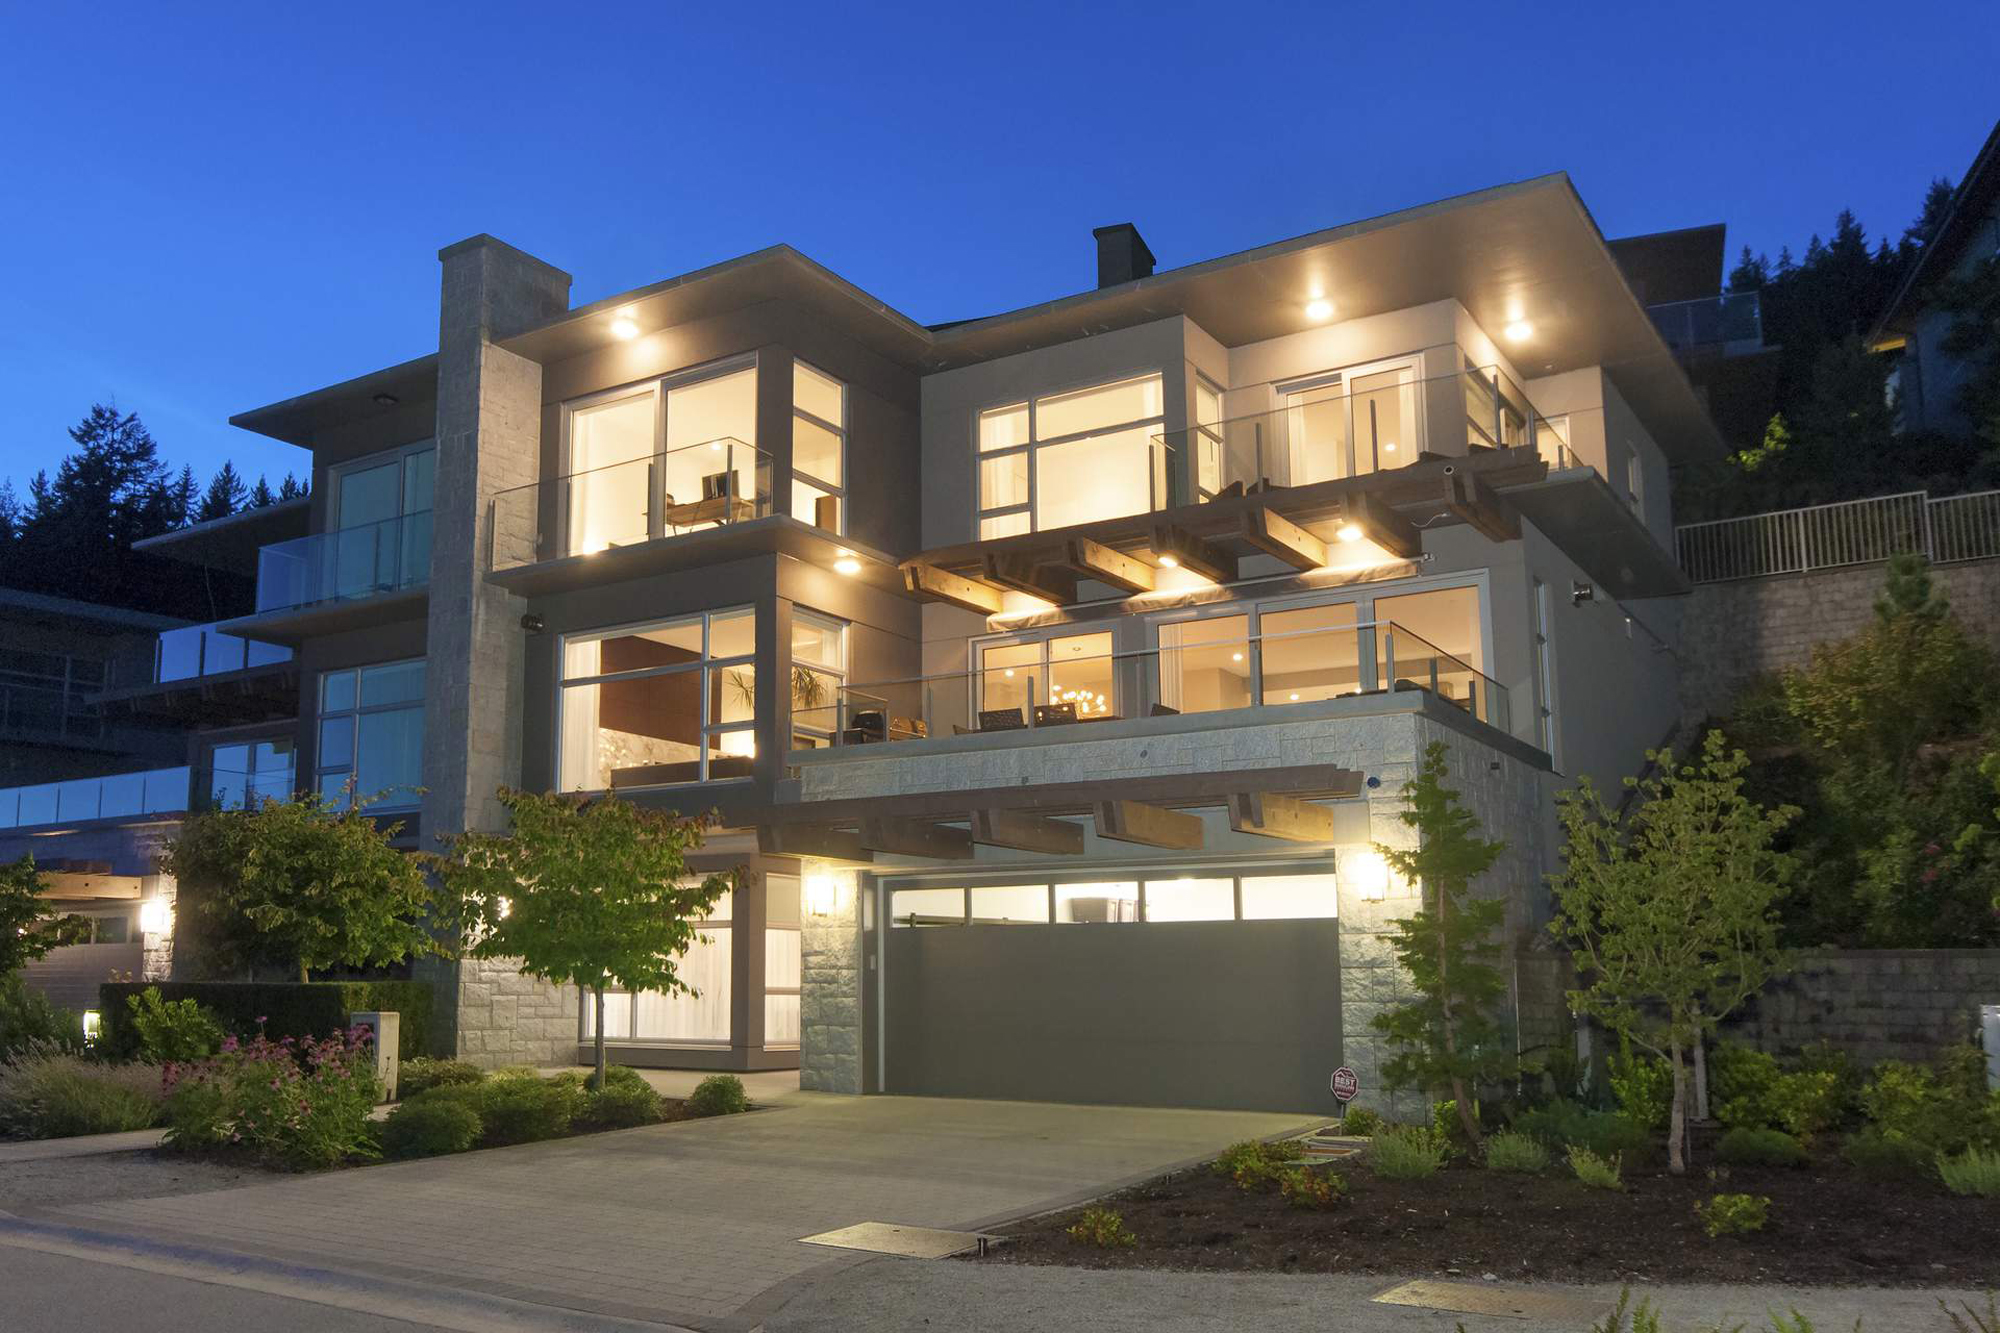 3 story modern home flat roof lots of windows balconys glass railings